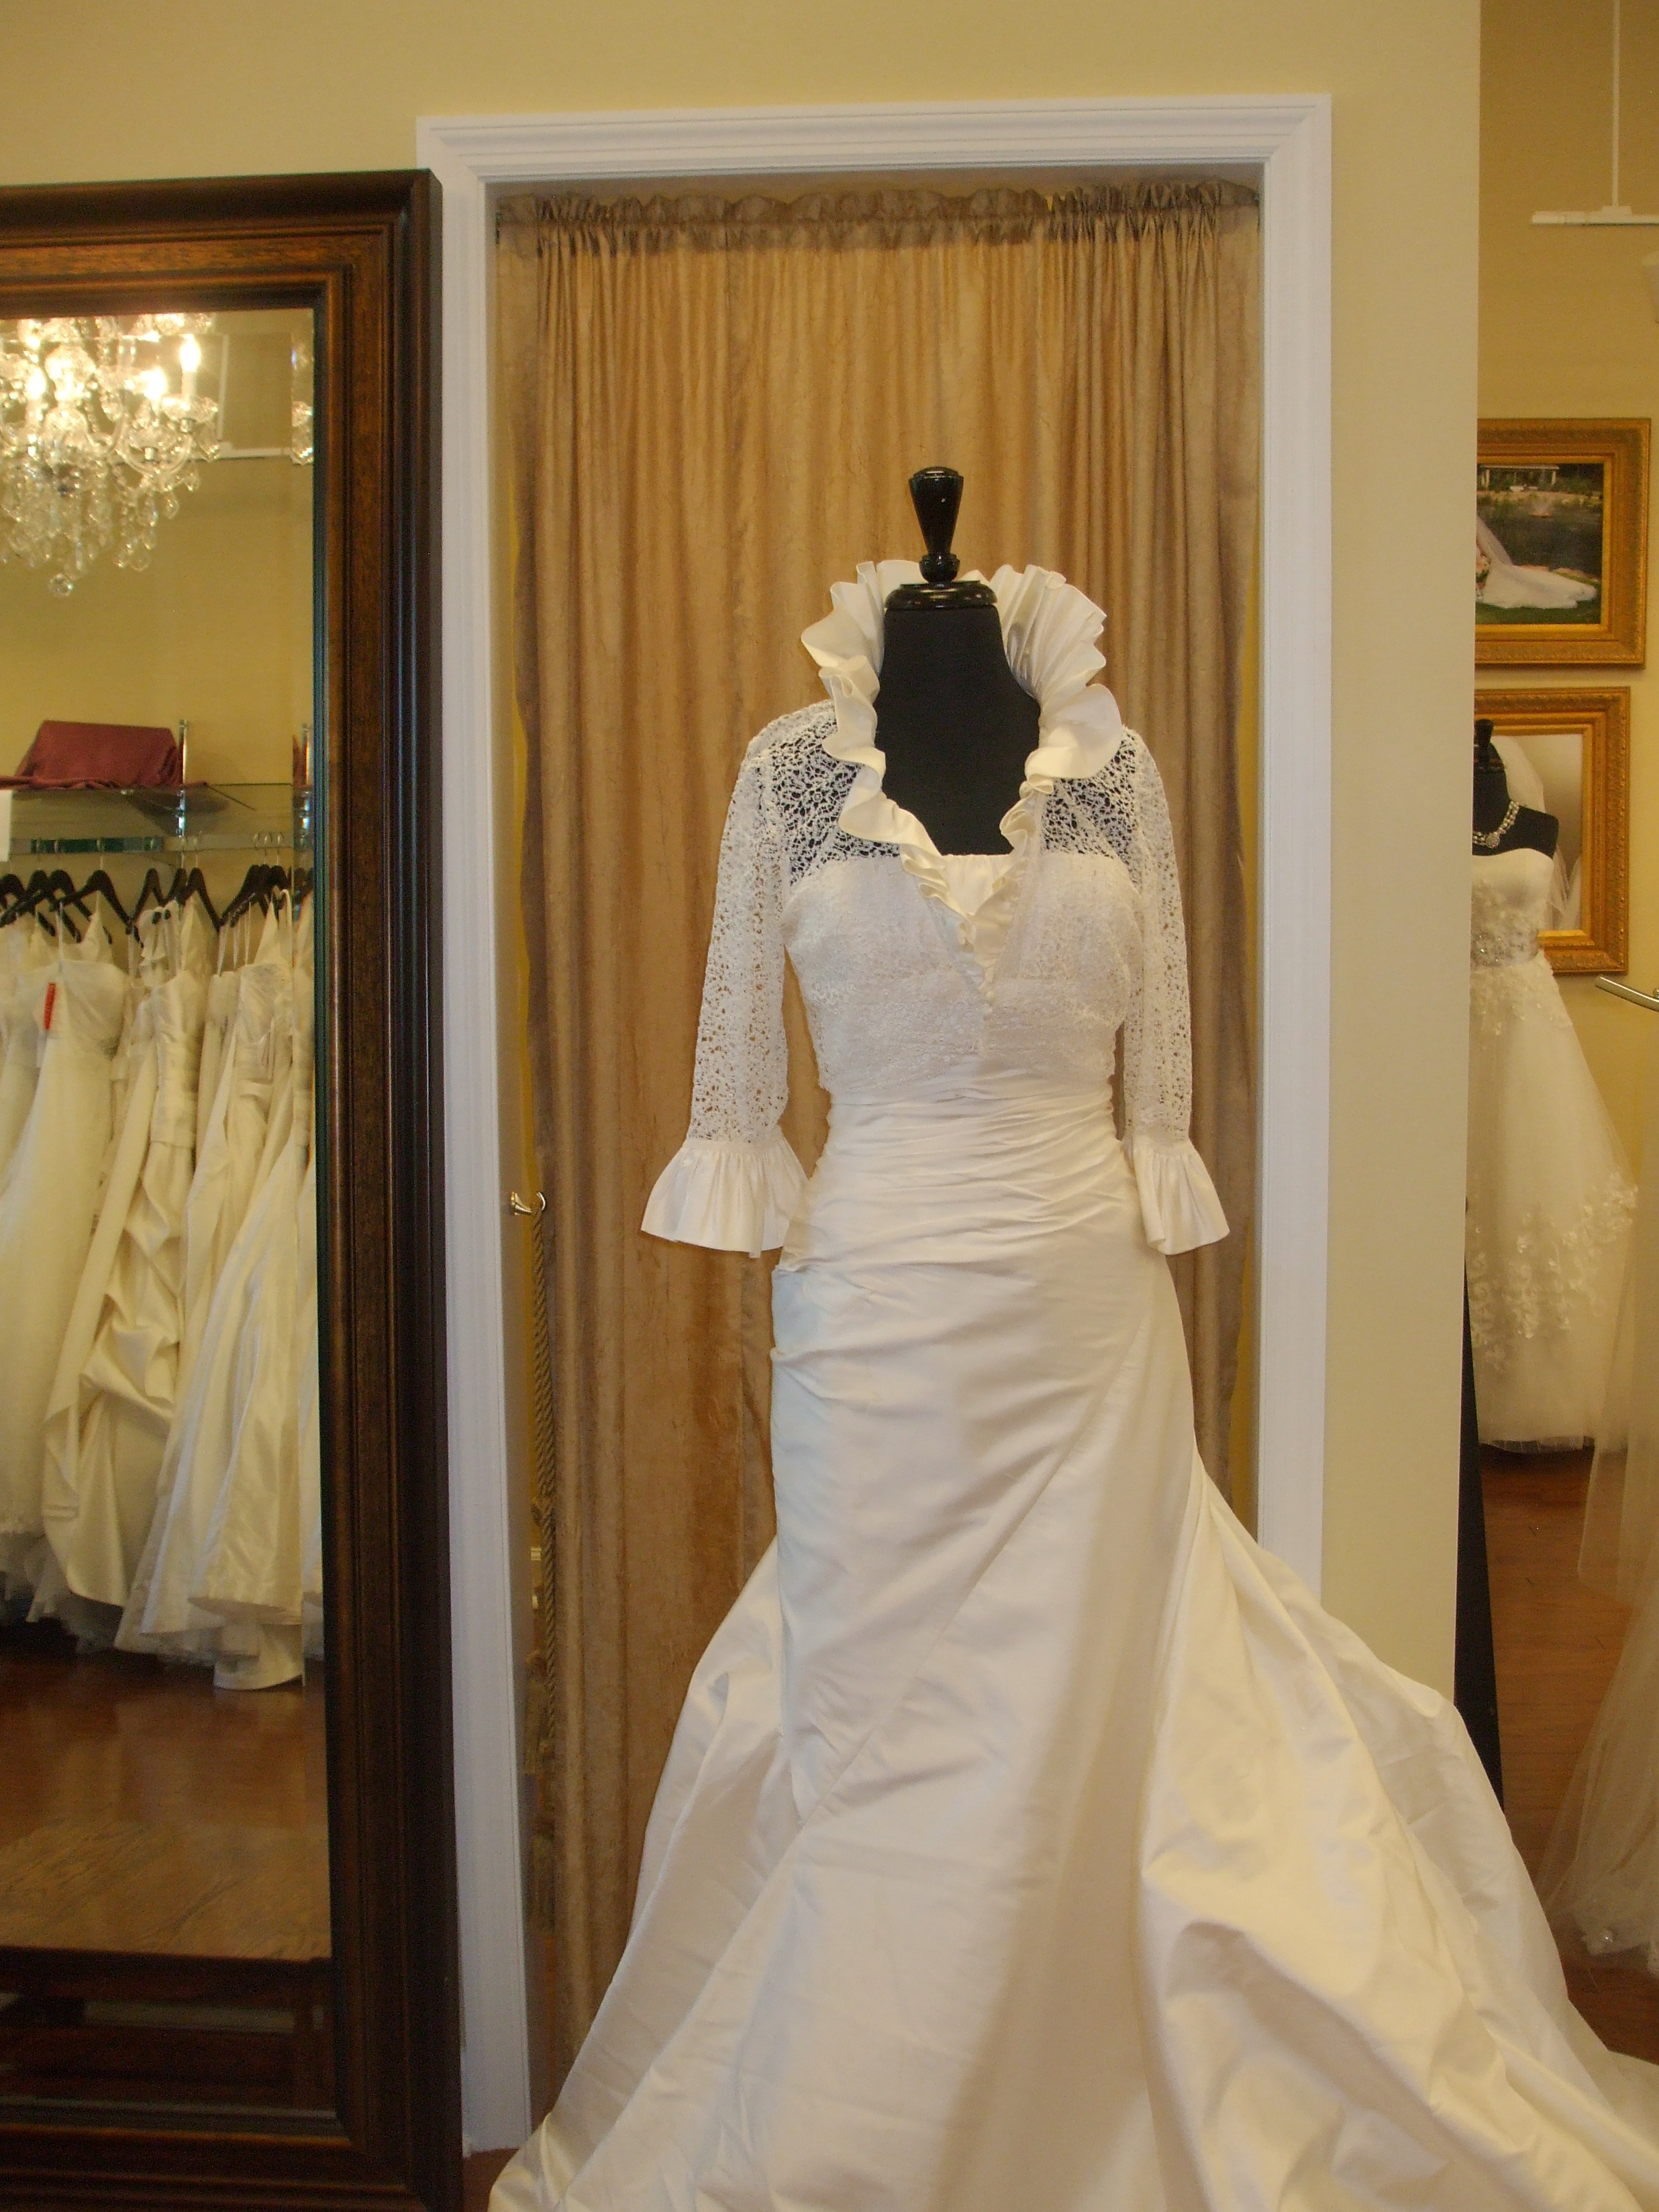 Consignment stores wedding dresses dallas tx for Wedding dress for sale